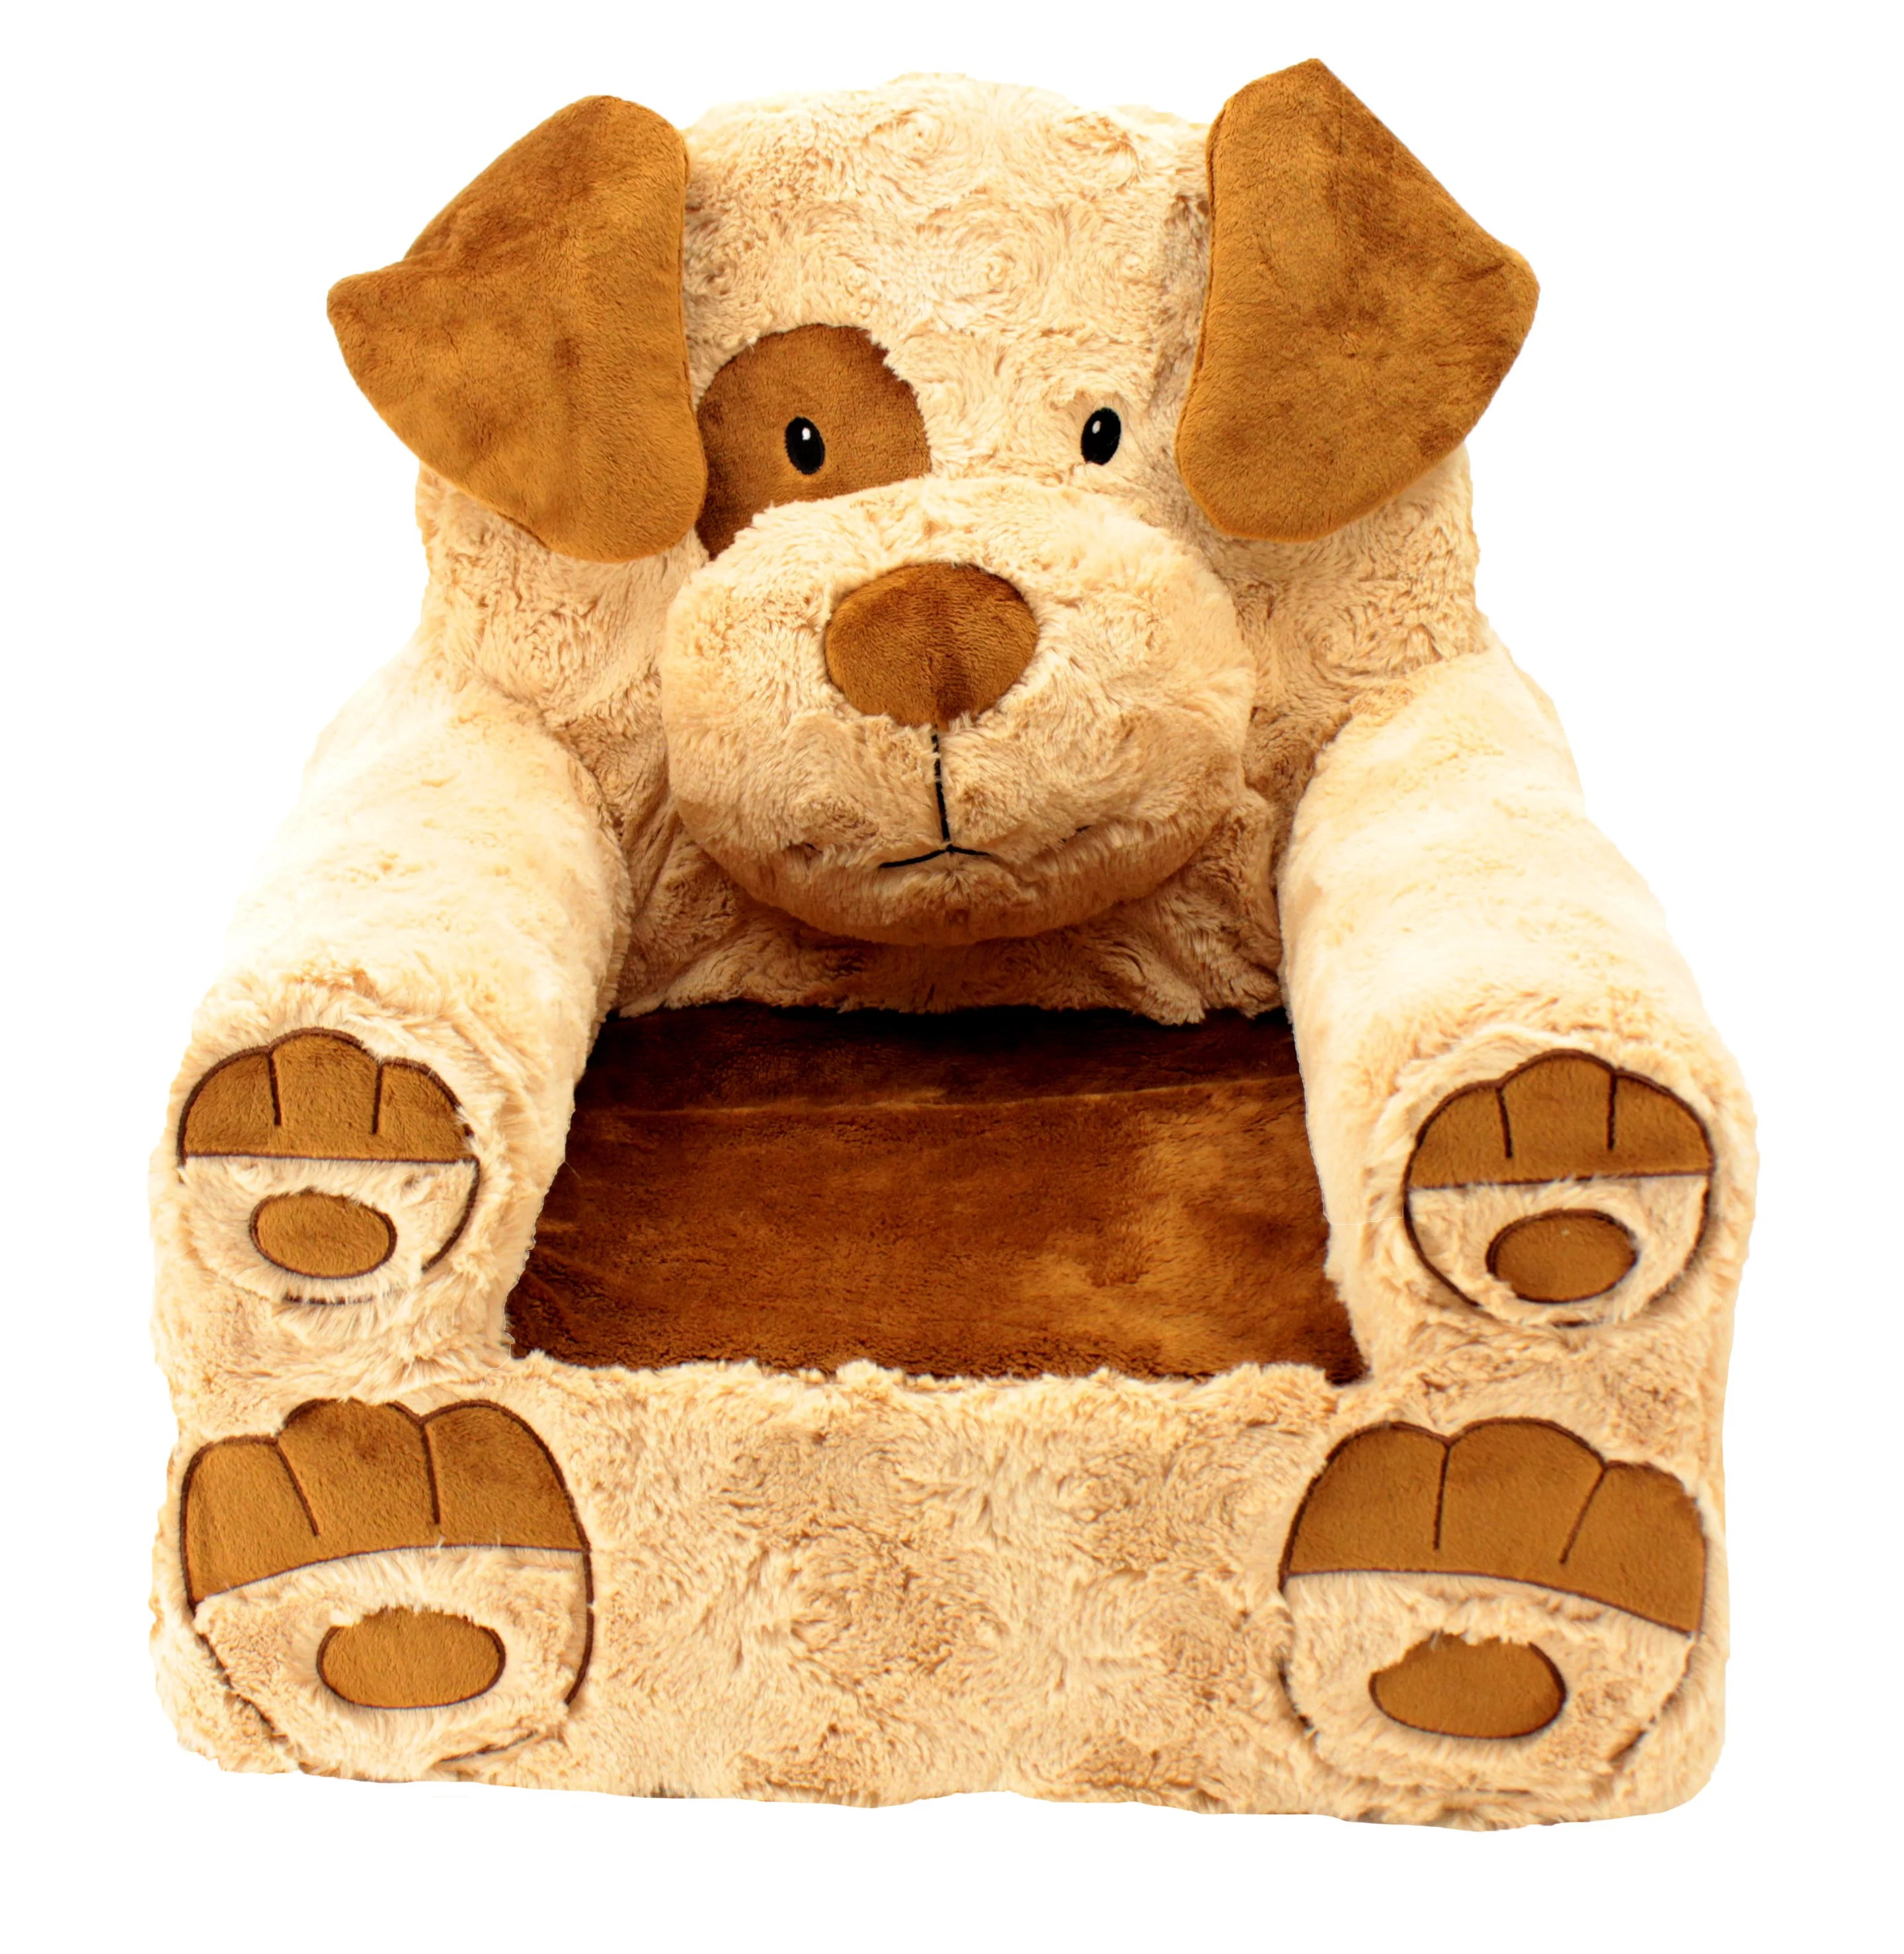 childrens chairs soft swivel chair natuzzi sweet seats adorable tan brown dog children s standard size machine washable removable cover 13 l x 18 w 19 h walmart com